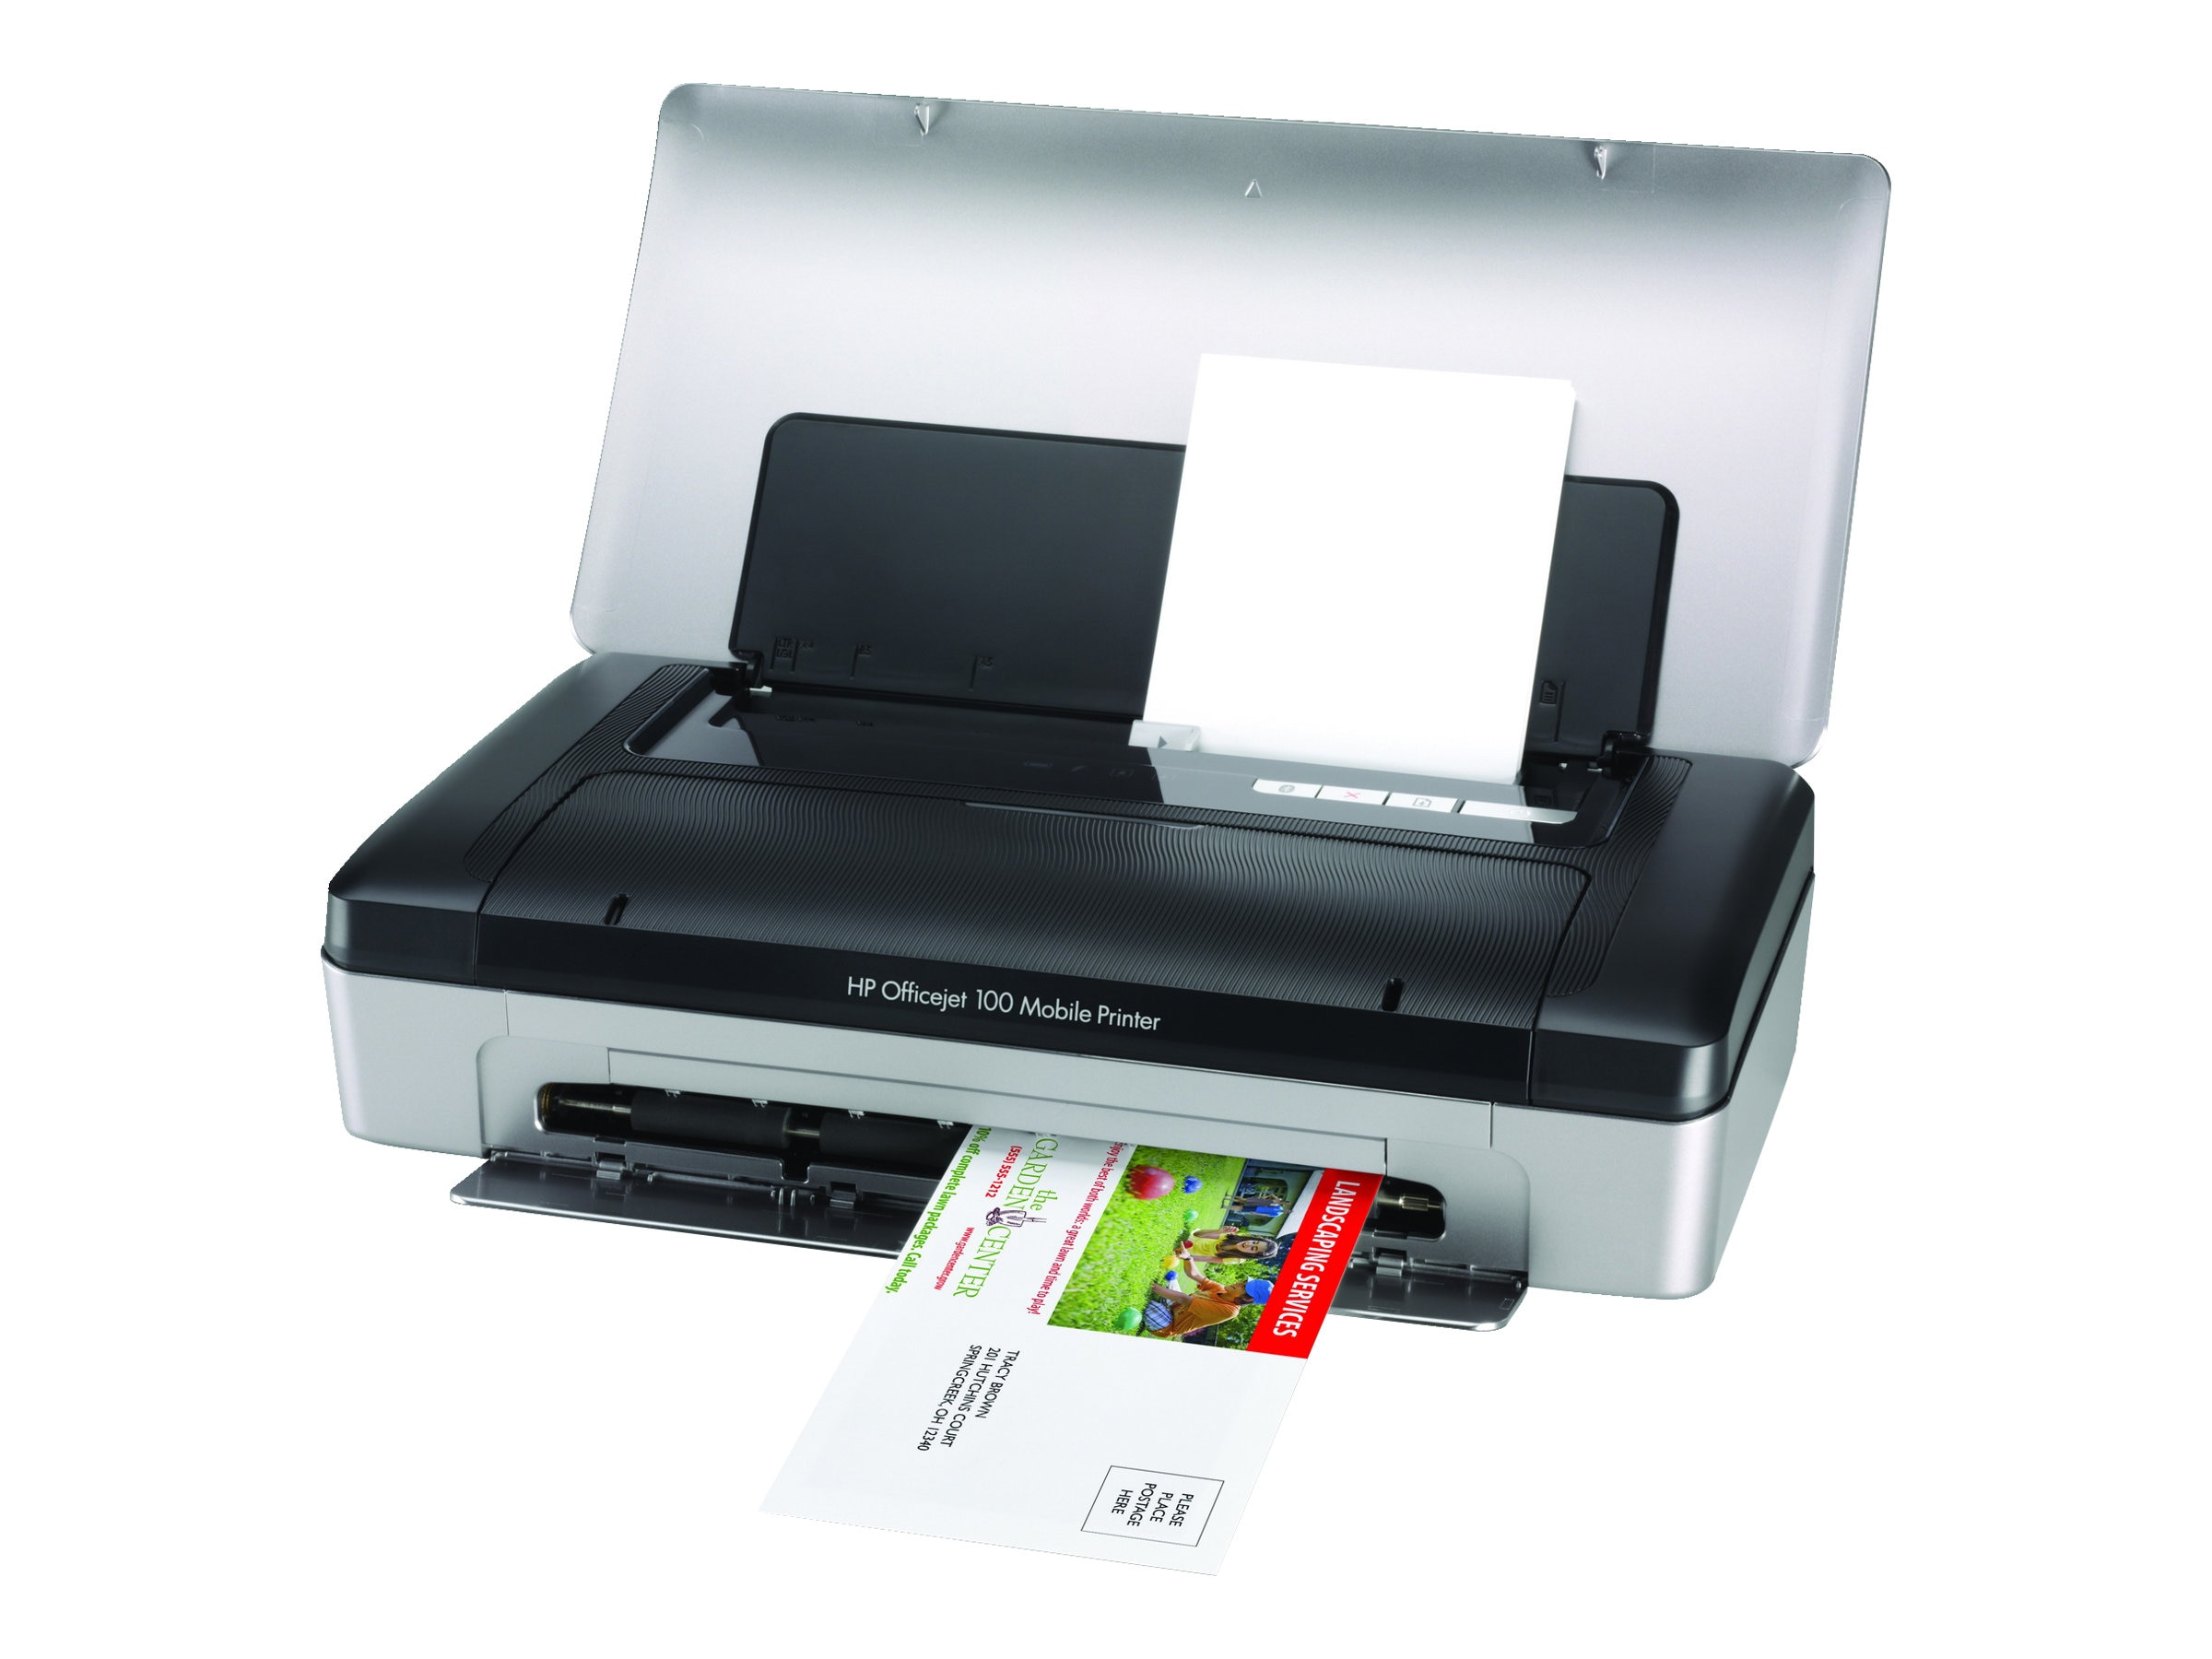 HP Officejet 100 Mobile Printer ($279.95 - $80 Instant Rebate = $199.95 Expires 04 30 2016)